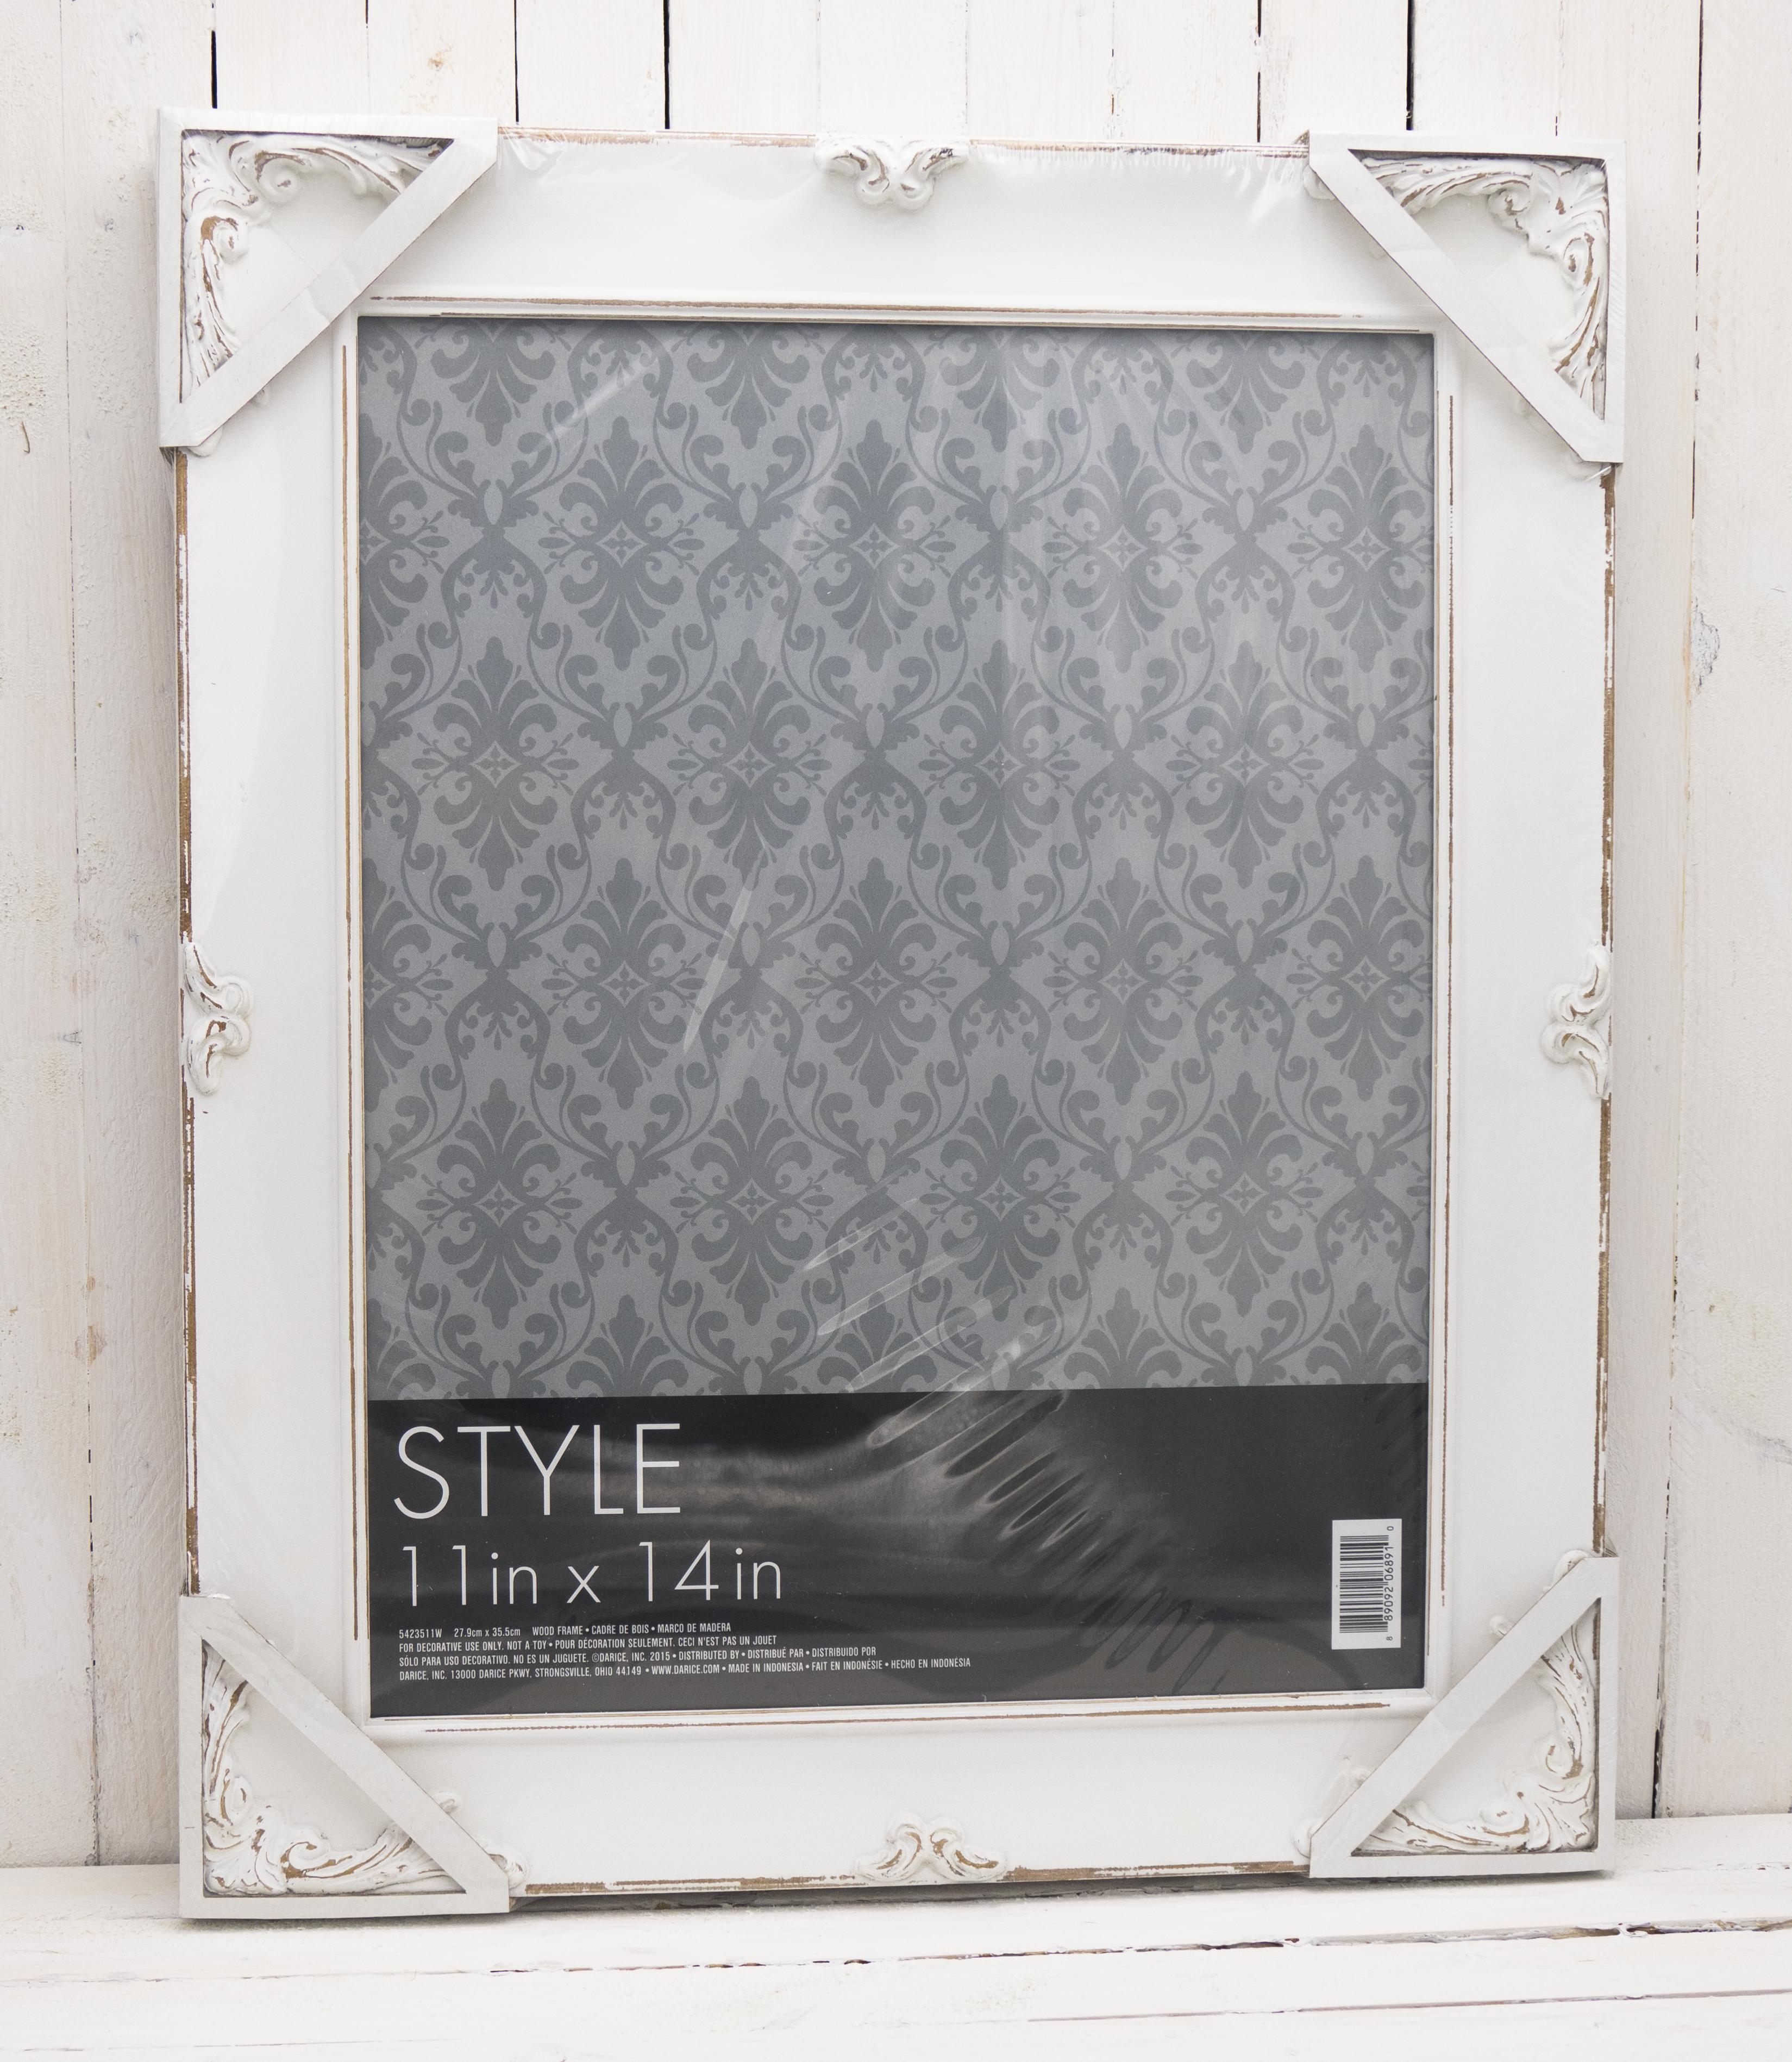 Ornate Rustic Picture Frame - Wood - Distressed White - 11 x 14 ...